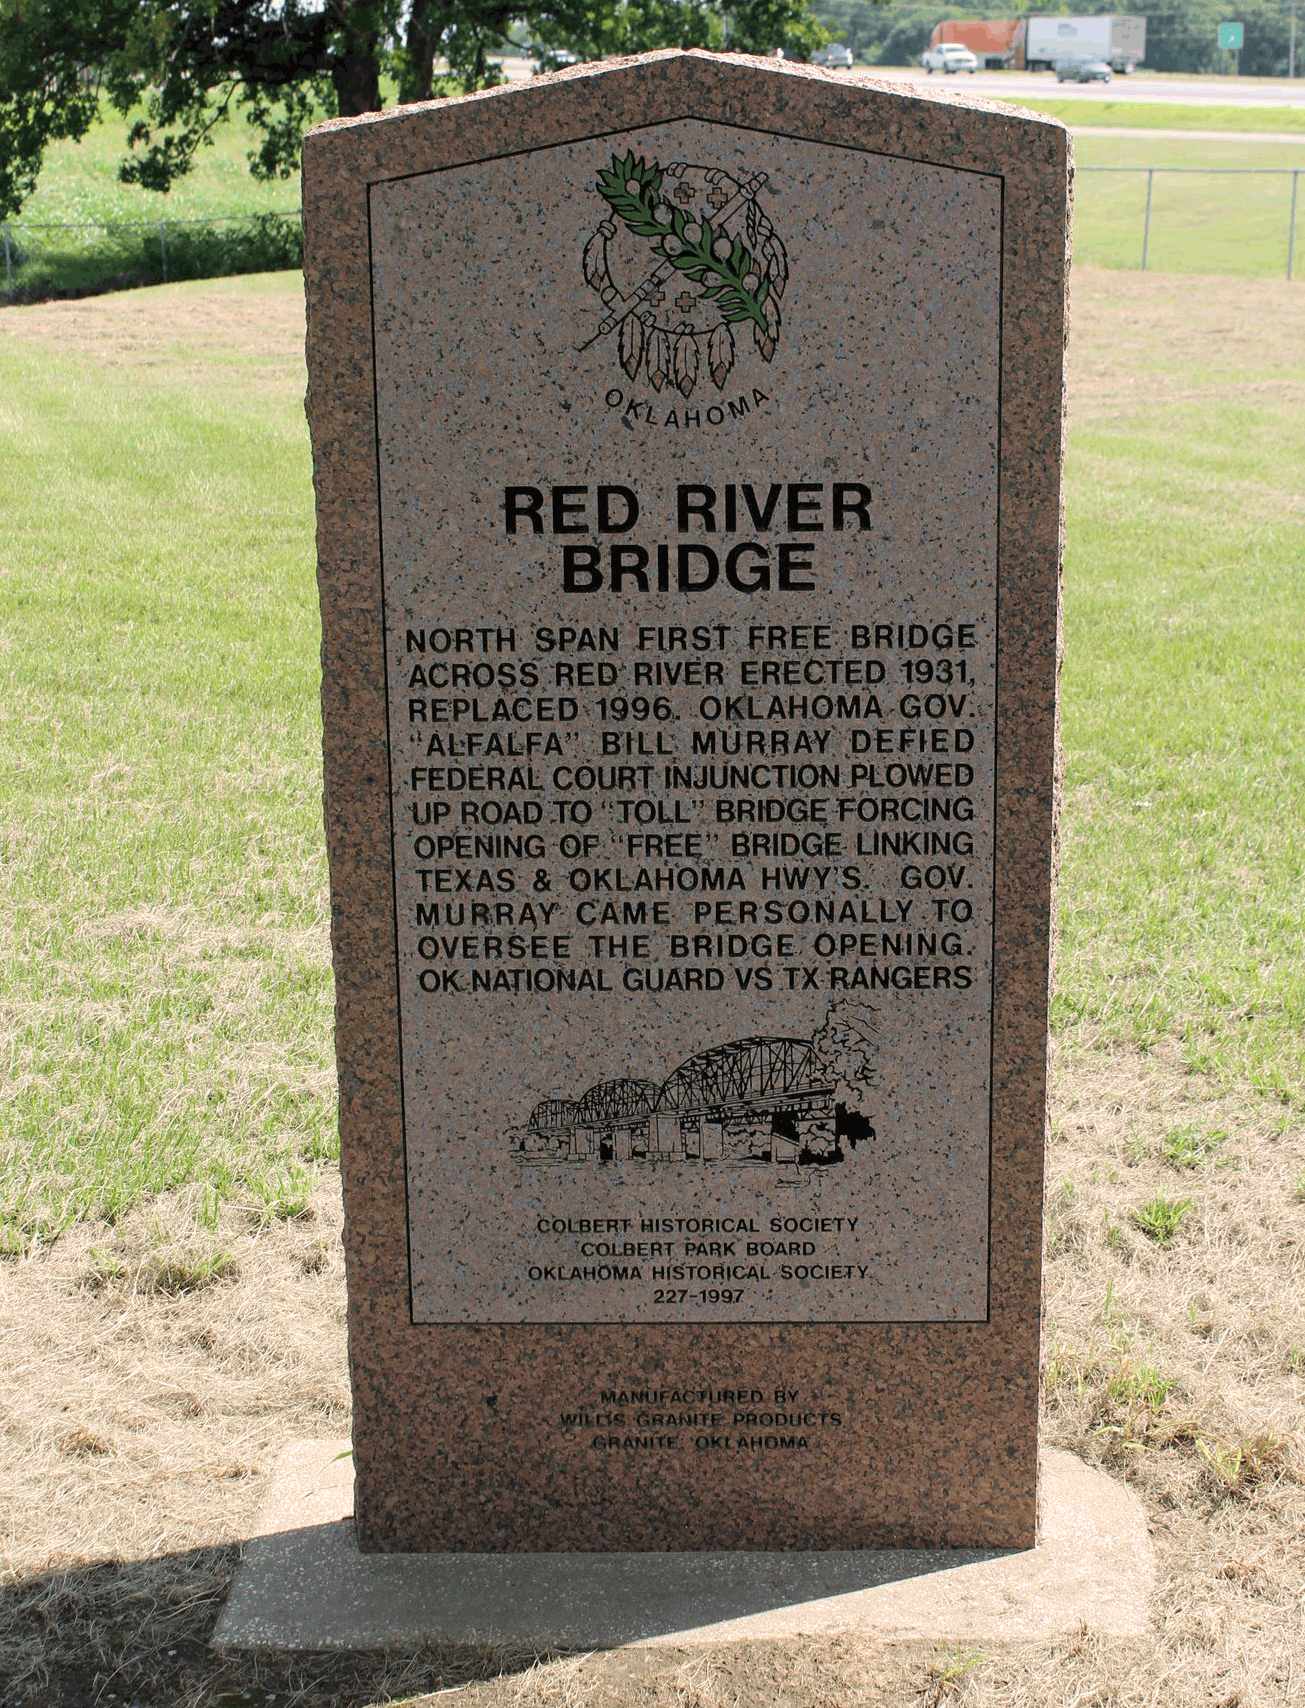 Exploring Oklahoma History: Red River Bridge